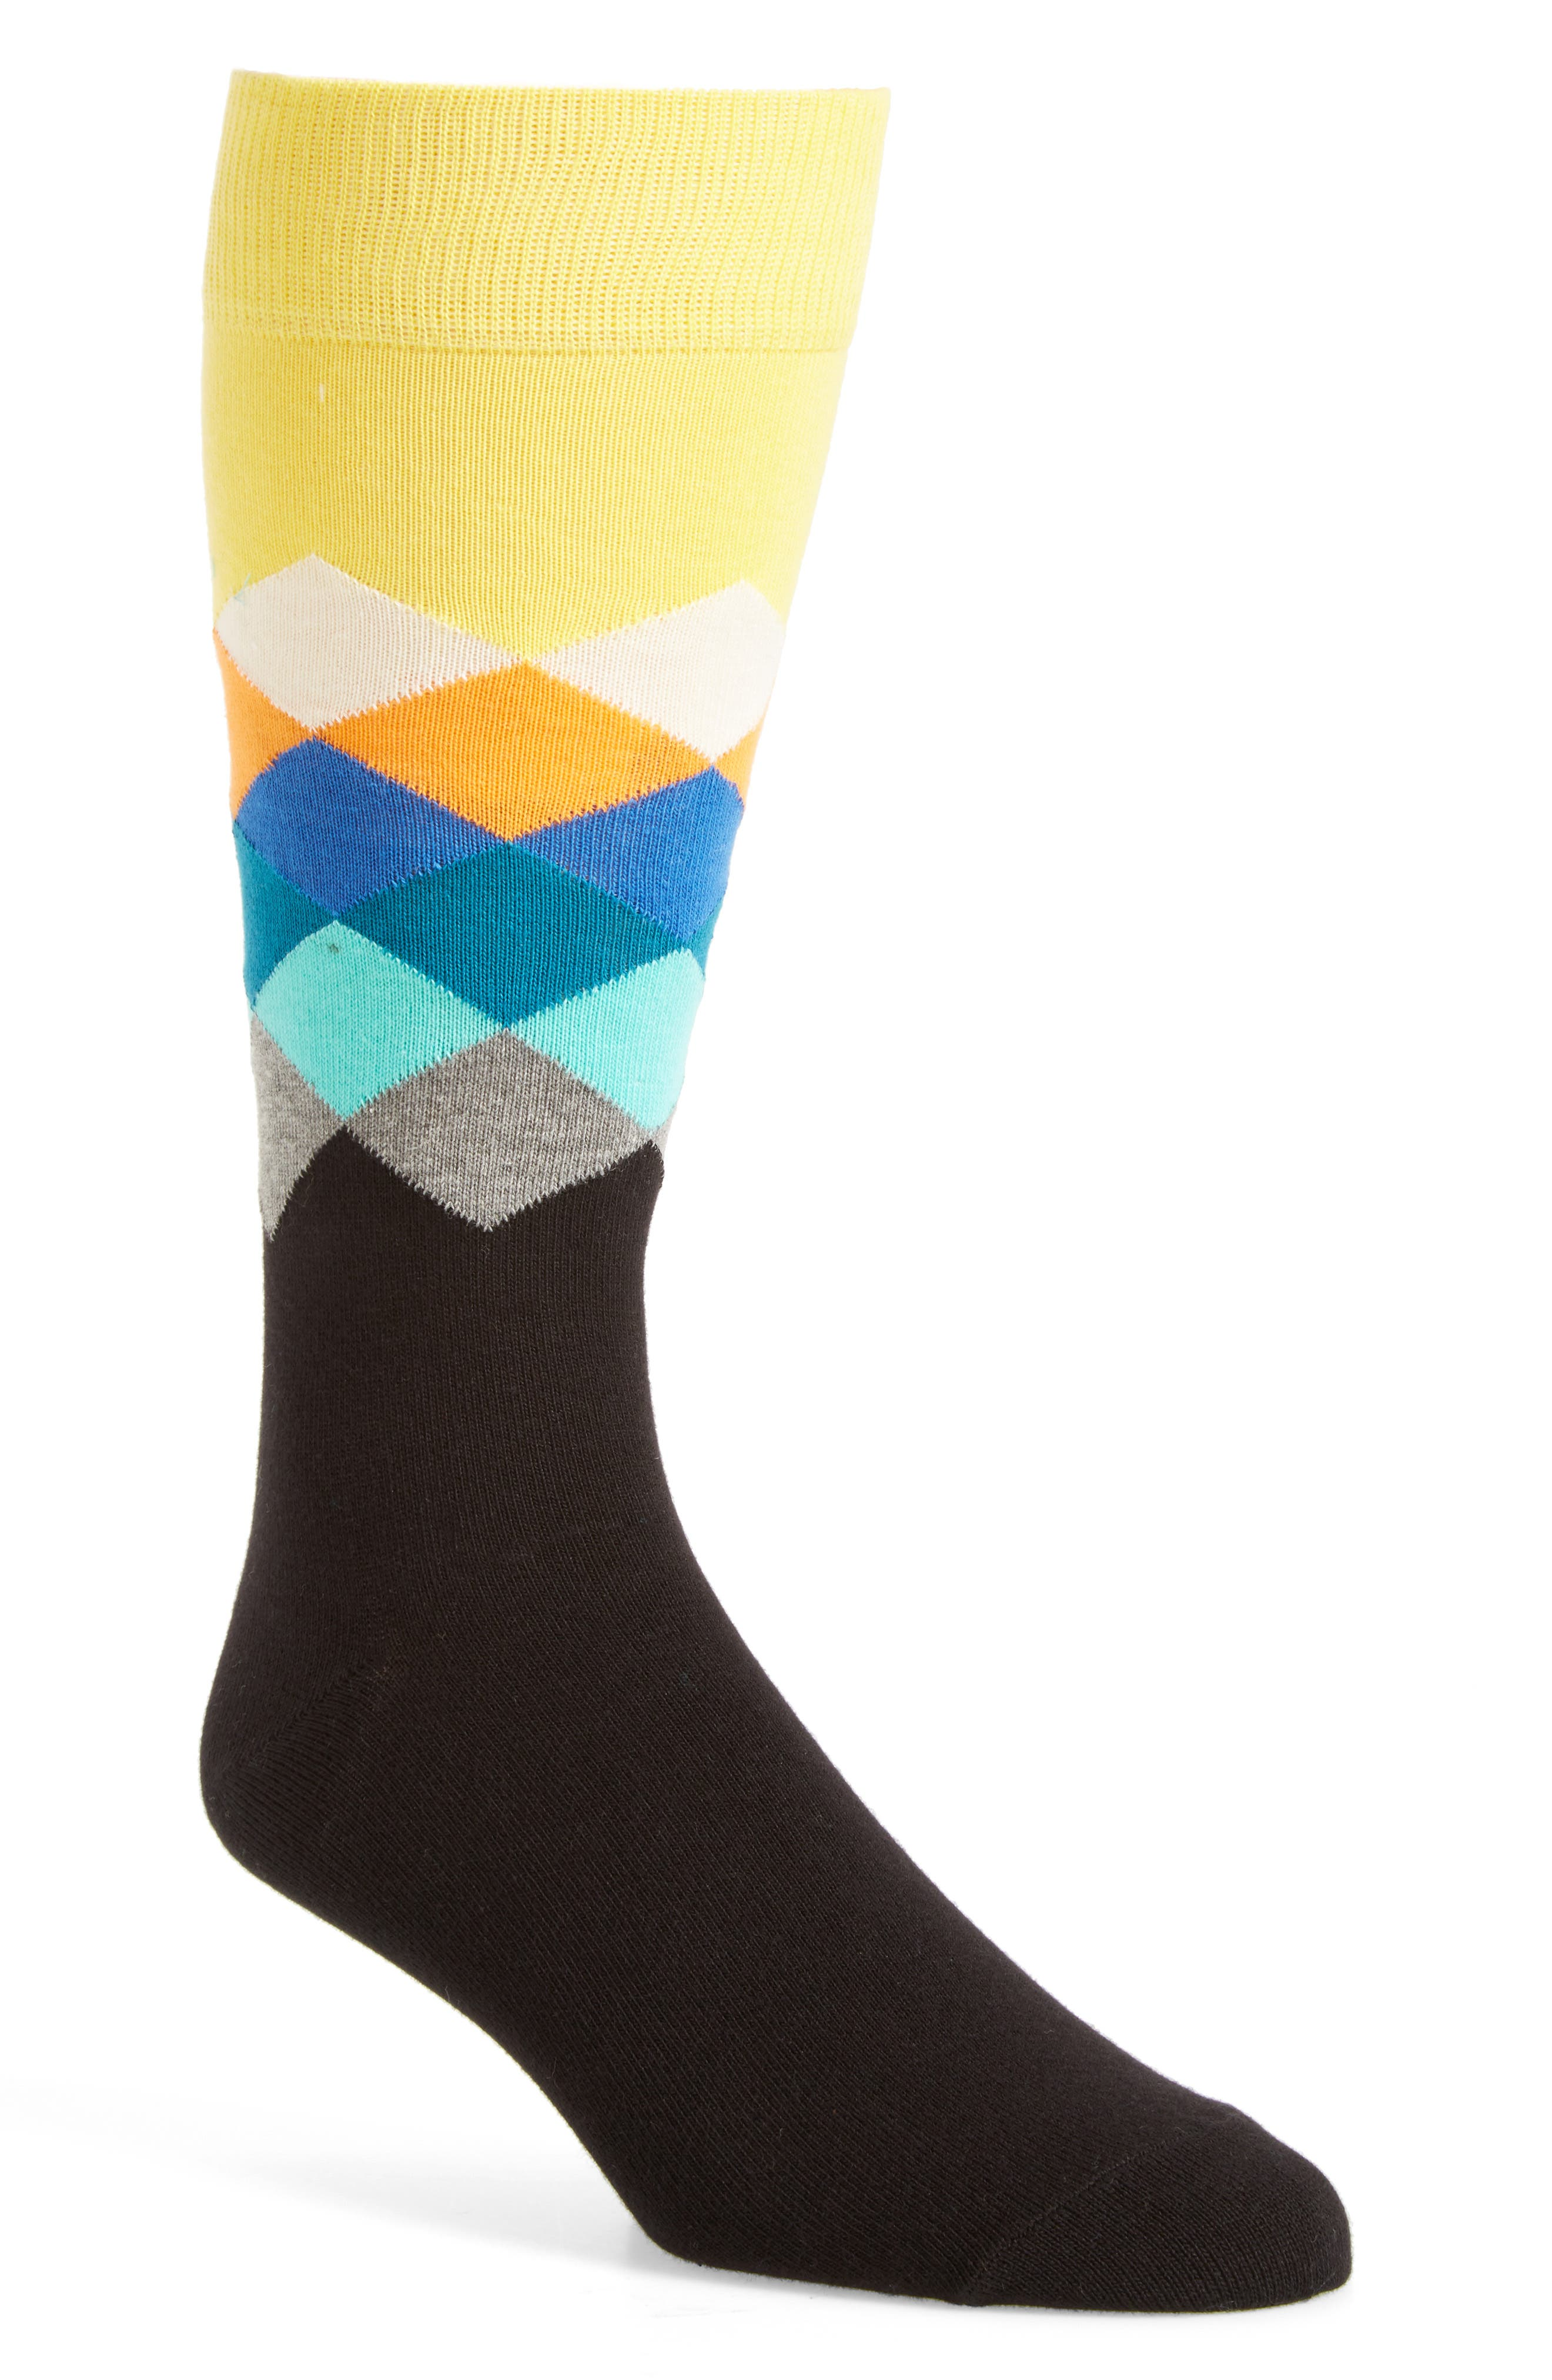 Diamond Socks,                         Main,                         color, 422